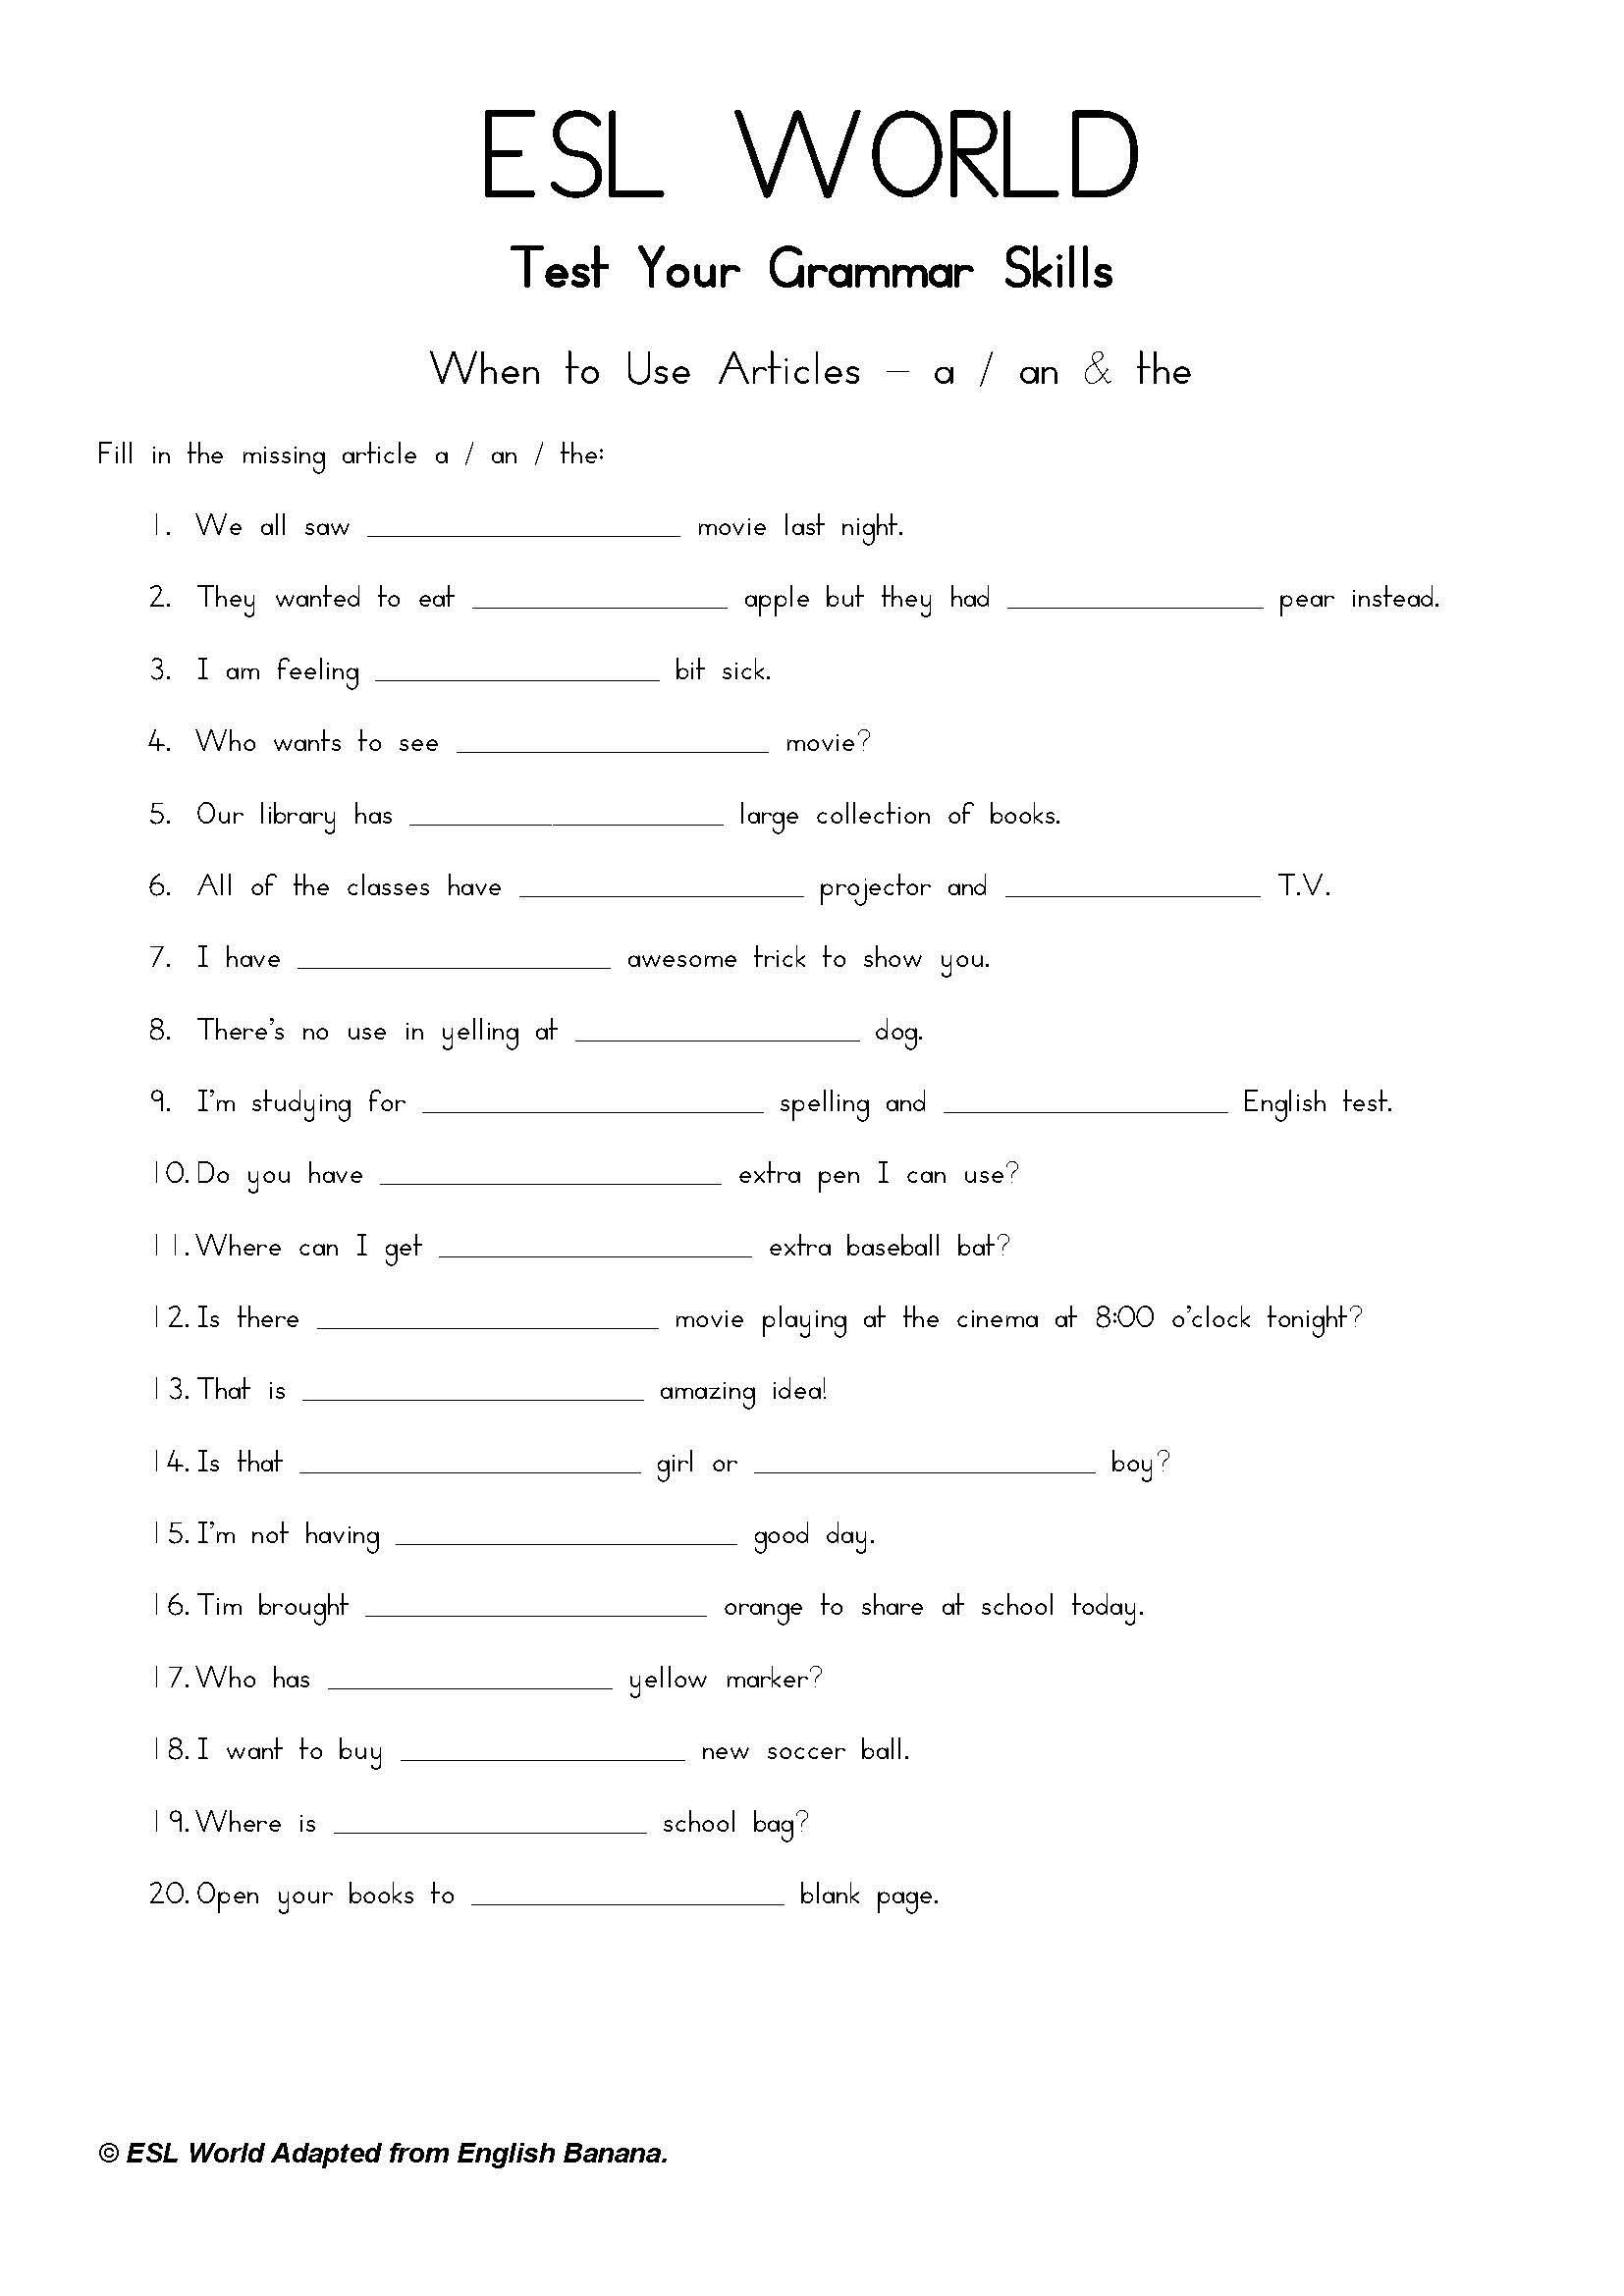 Articles A An The What Are Esl Printables This File Includes A Simple Guide In 2021 Grammar Skills Reading Comprehension Worksheets English Worksheets For Kindergarten [ 2339 x 1654 Pixel ]